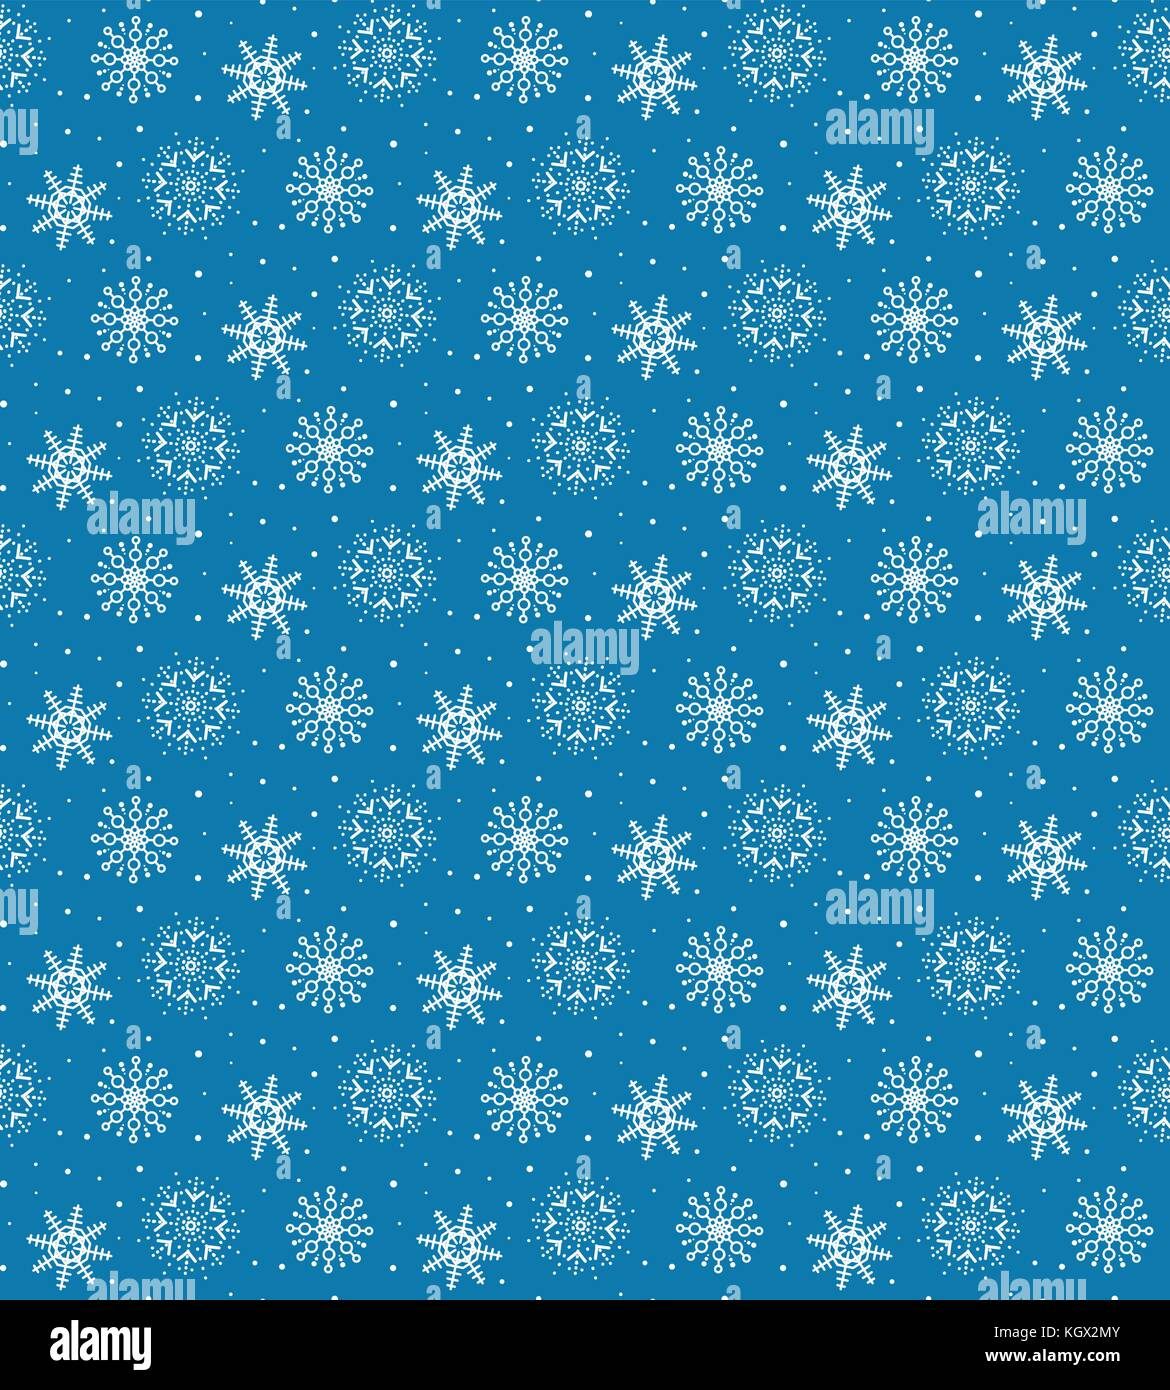 seamless pattern of many white snowflakes on blue background christmas winter theme for gift wrapping new year seamless background for website